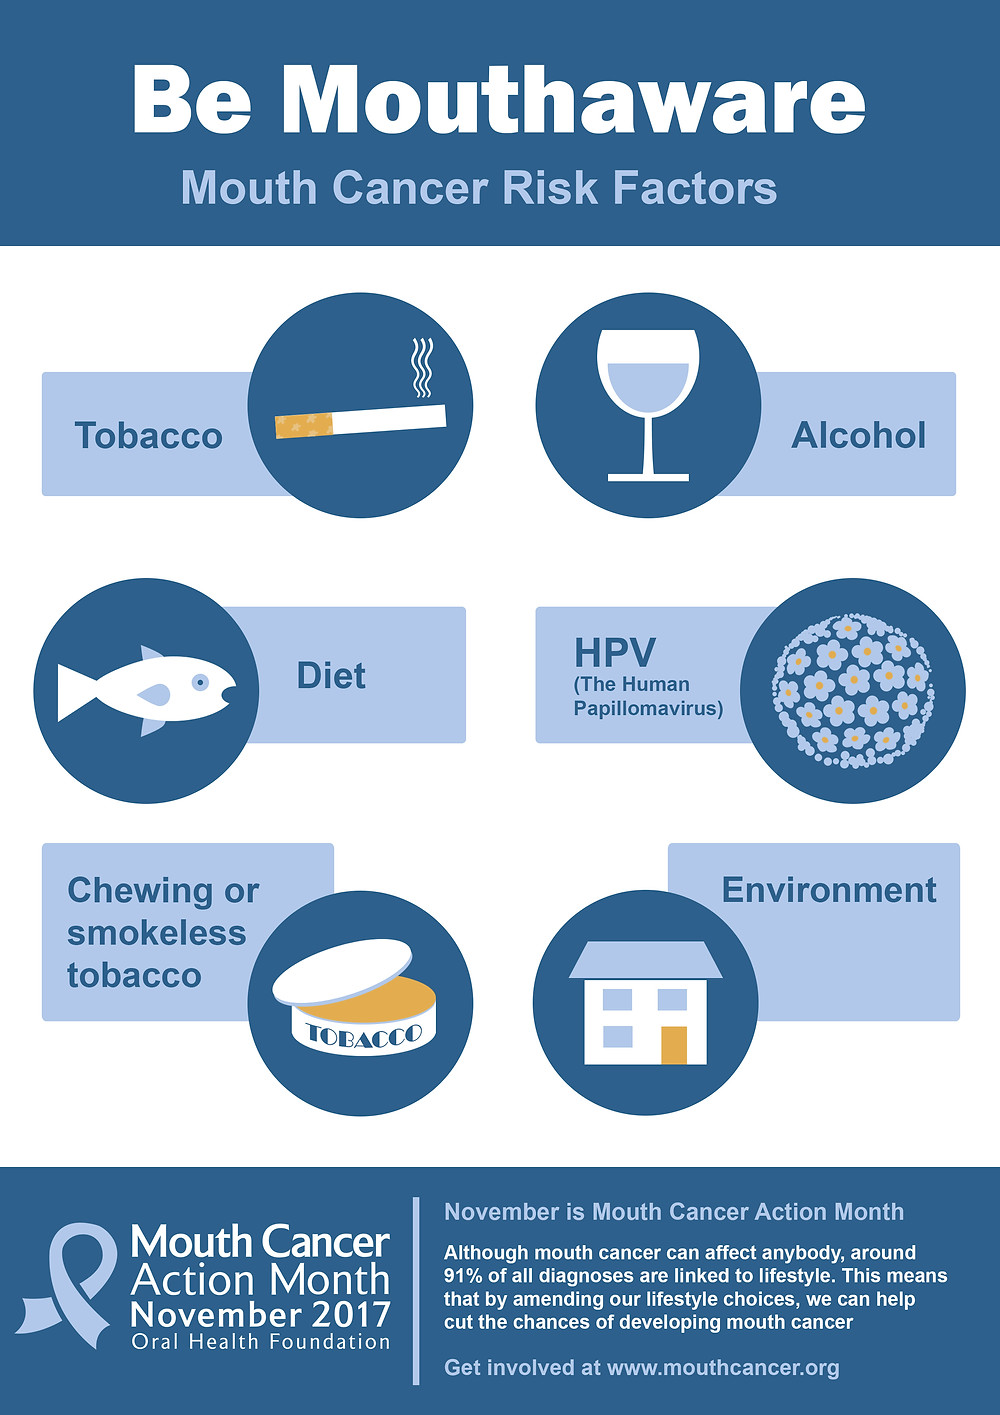 Risk factors poster from Mouth Cancer Action Month